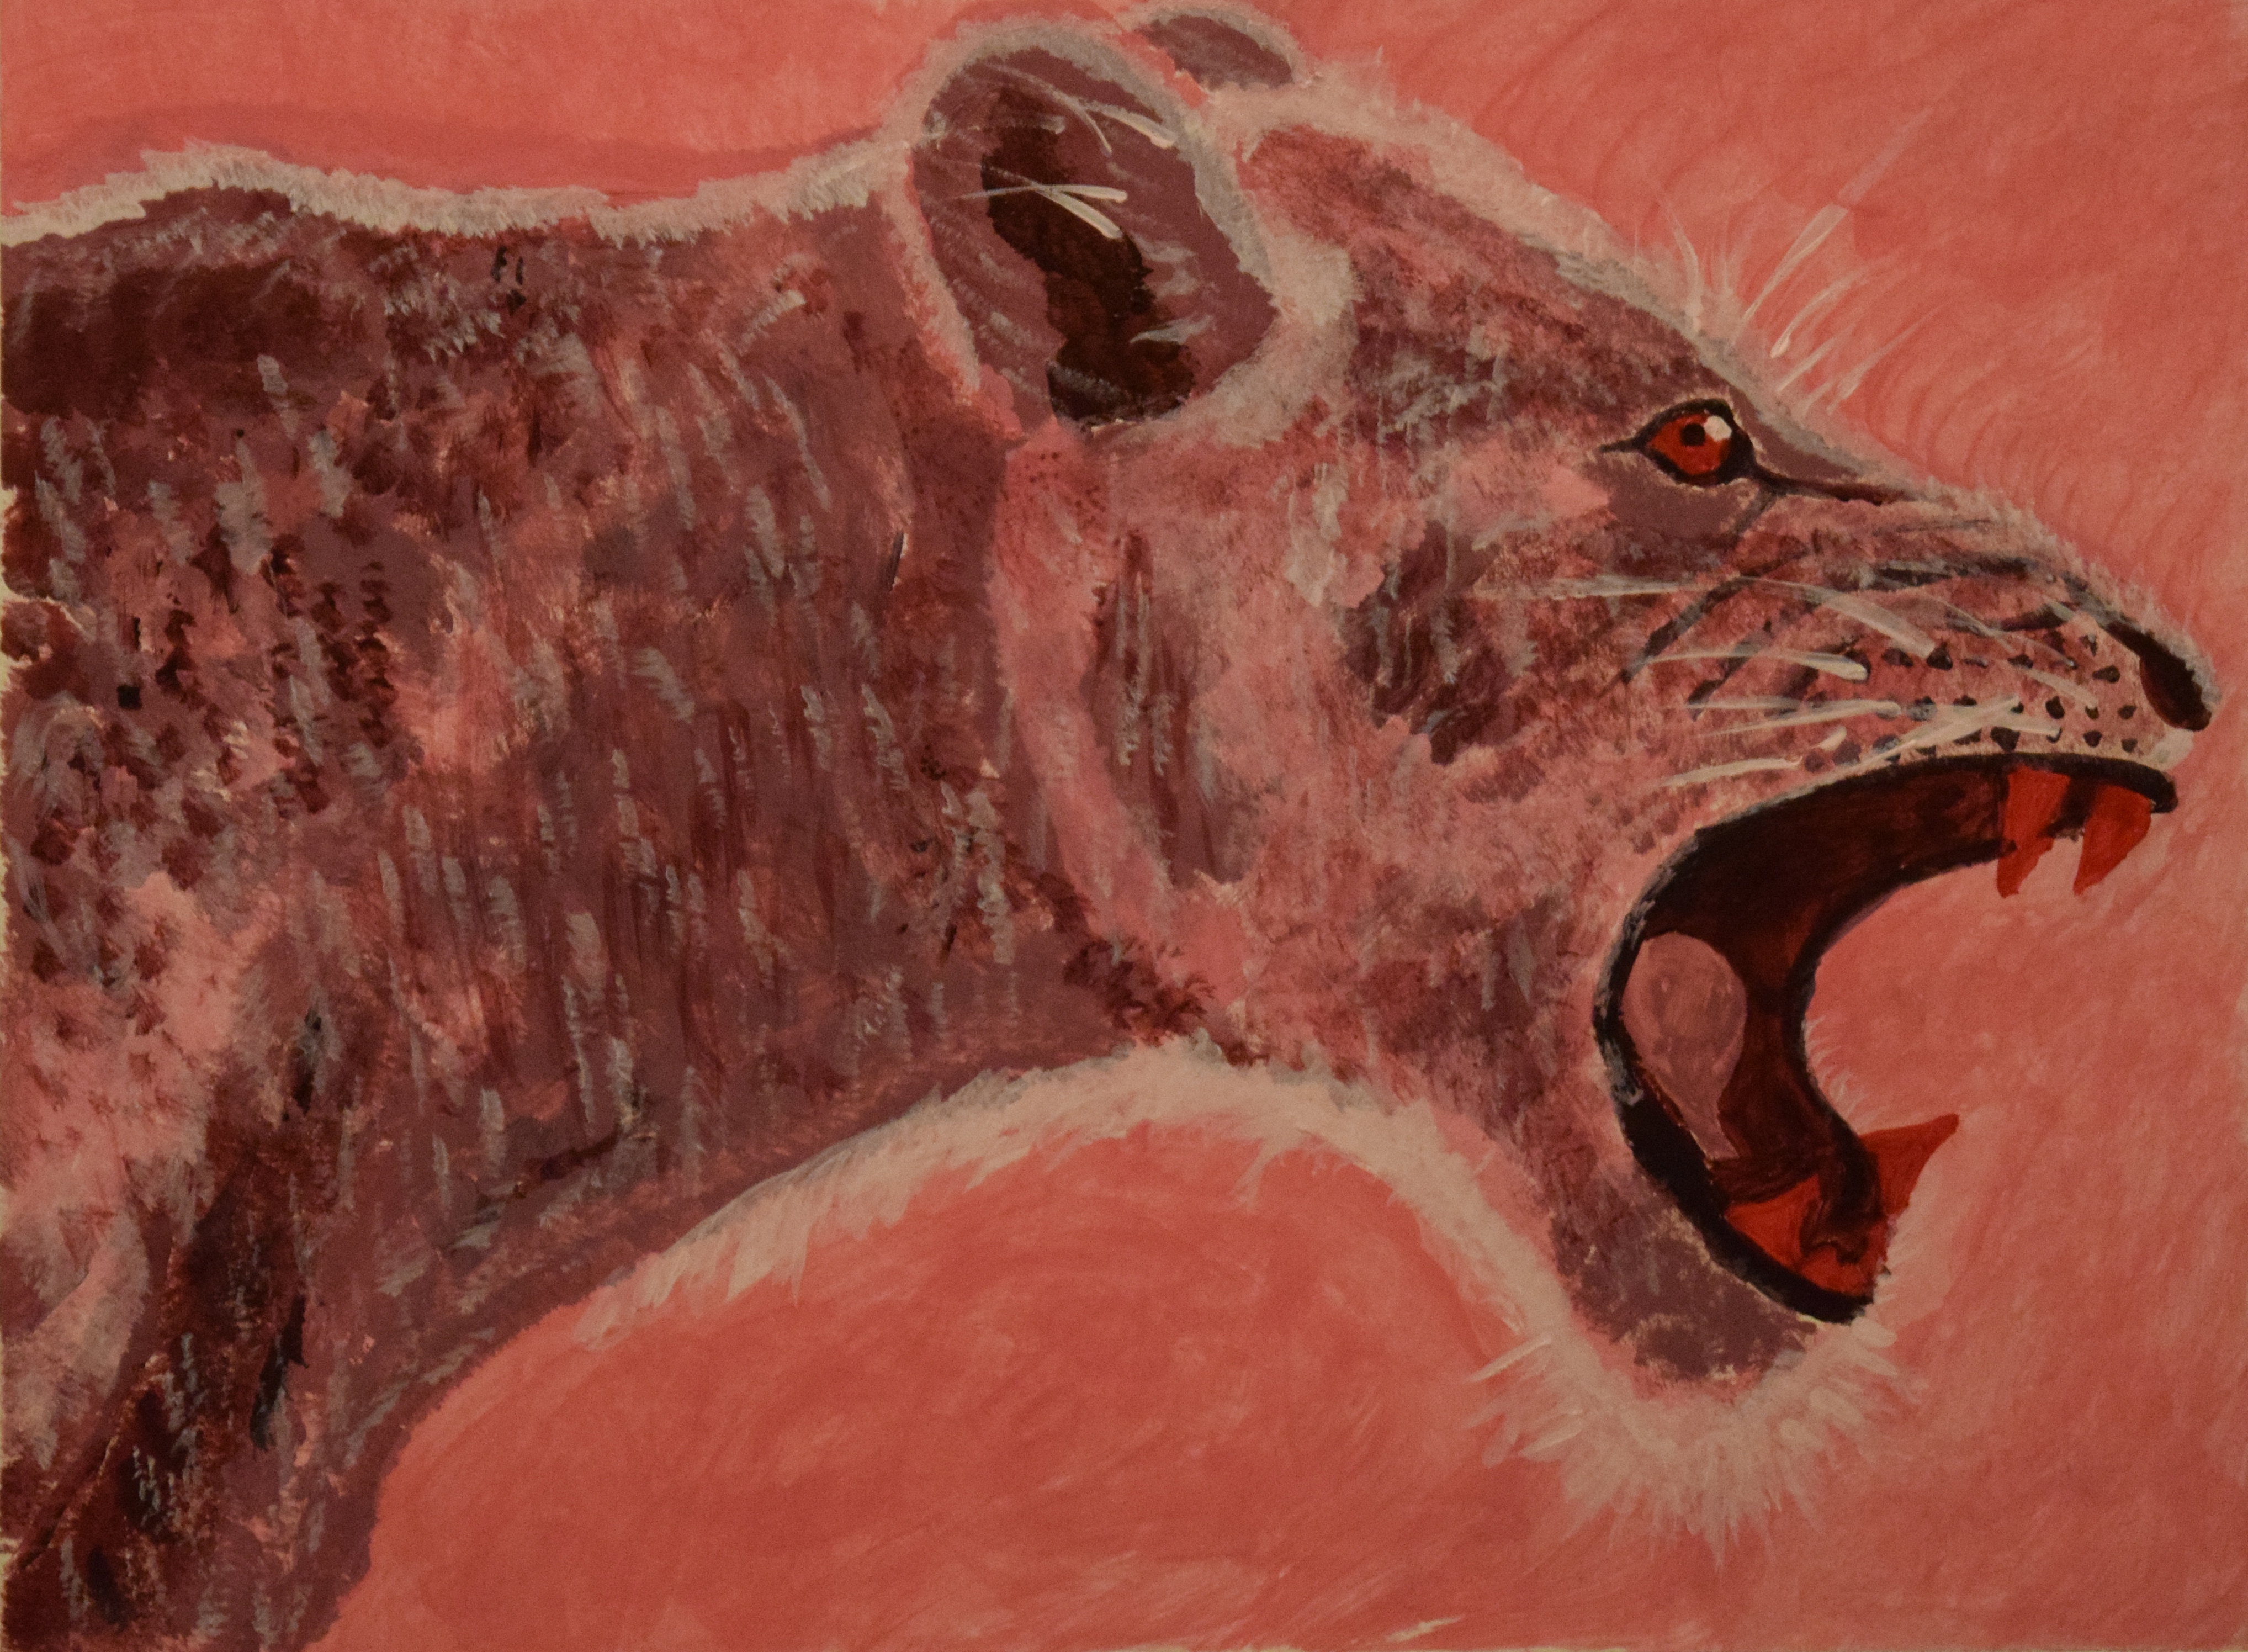 Raspberry Lioness - Acrylic on illustration board - 9 x 12 in.